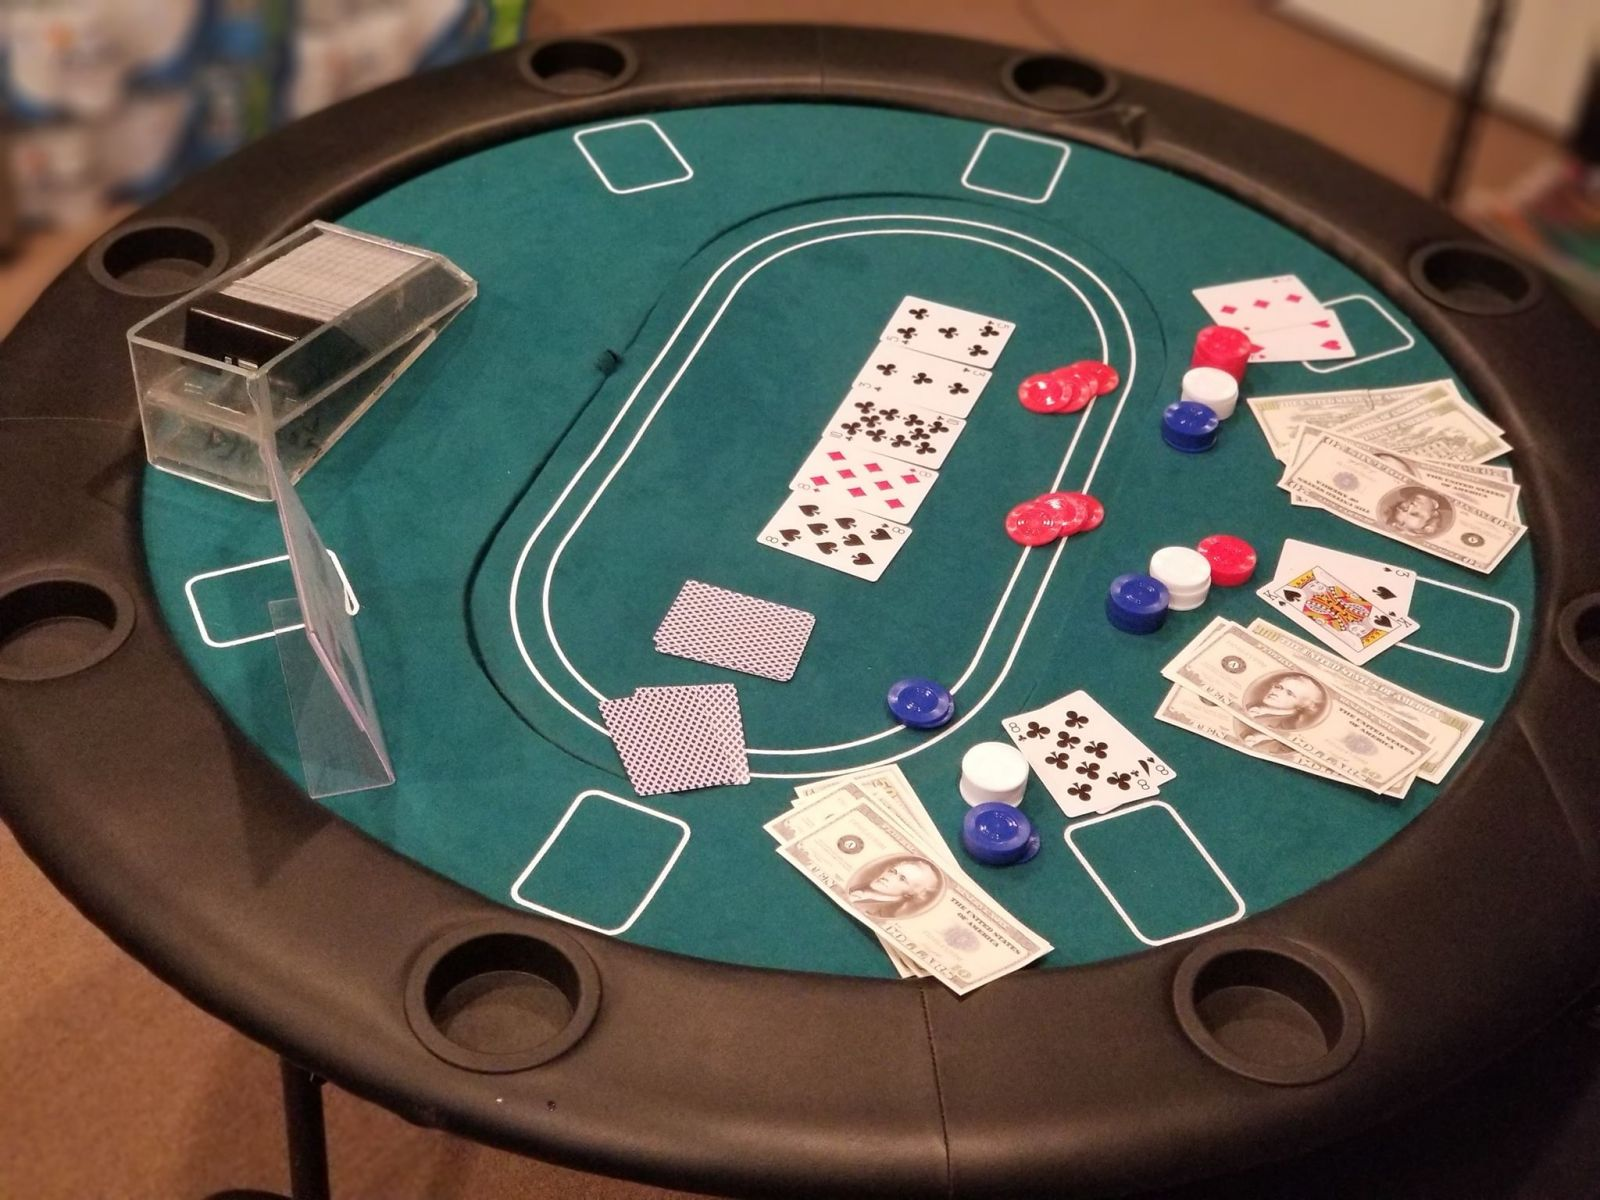 Round Poker Table Casino Games | www.3monkeysinflatables.com